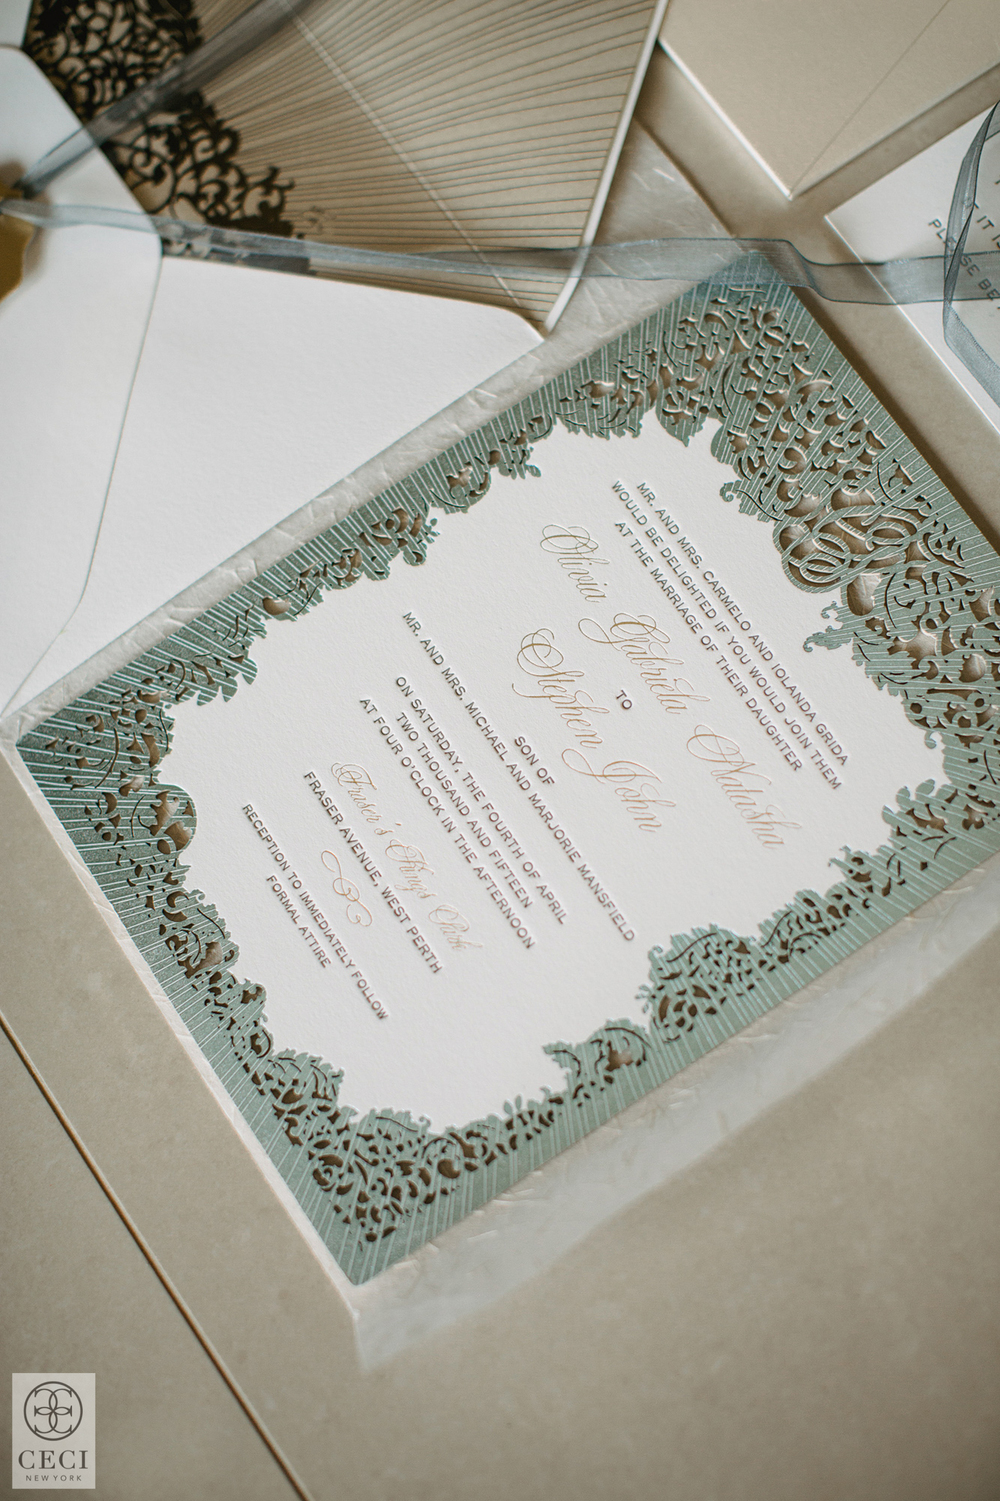 Ceci_New_York_Custom_Luxury_Wedding_BeautyShot_LaserCut_Stationery_Personalized_Couture_Foil_Stamping_Perth_Destination_Australia_Chic_-6.jpg